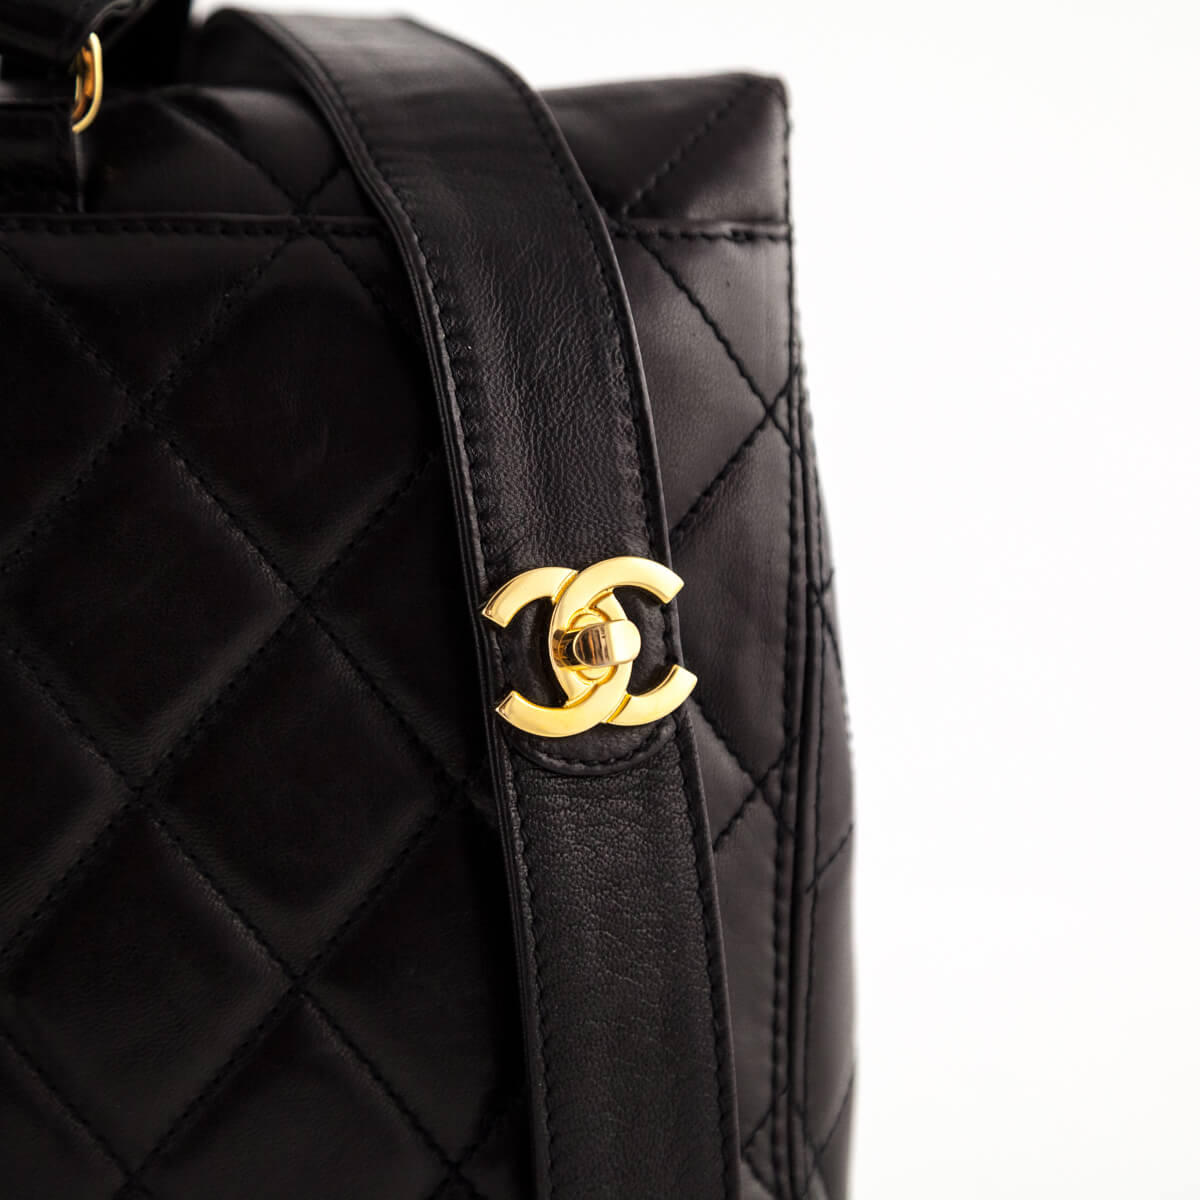 a04e8b7e49a9 ... Chanel Black Quilted Lambskin Vintage Backpack - LOVE that BAG -  Preowned Authentic Designer Handbags ...